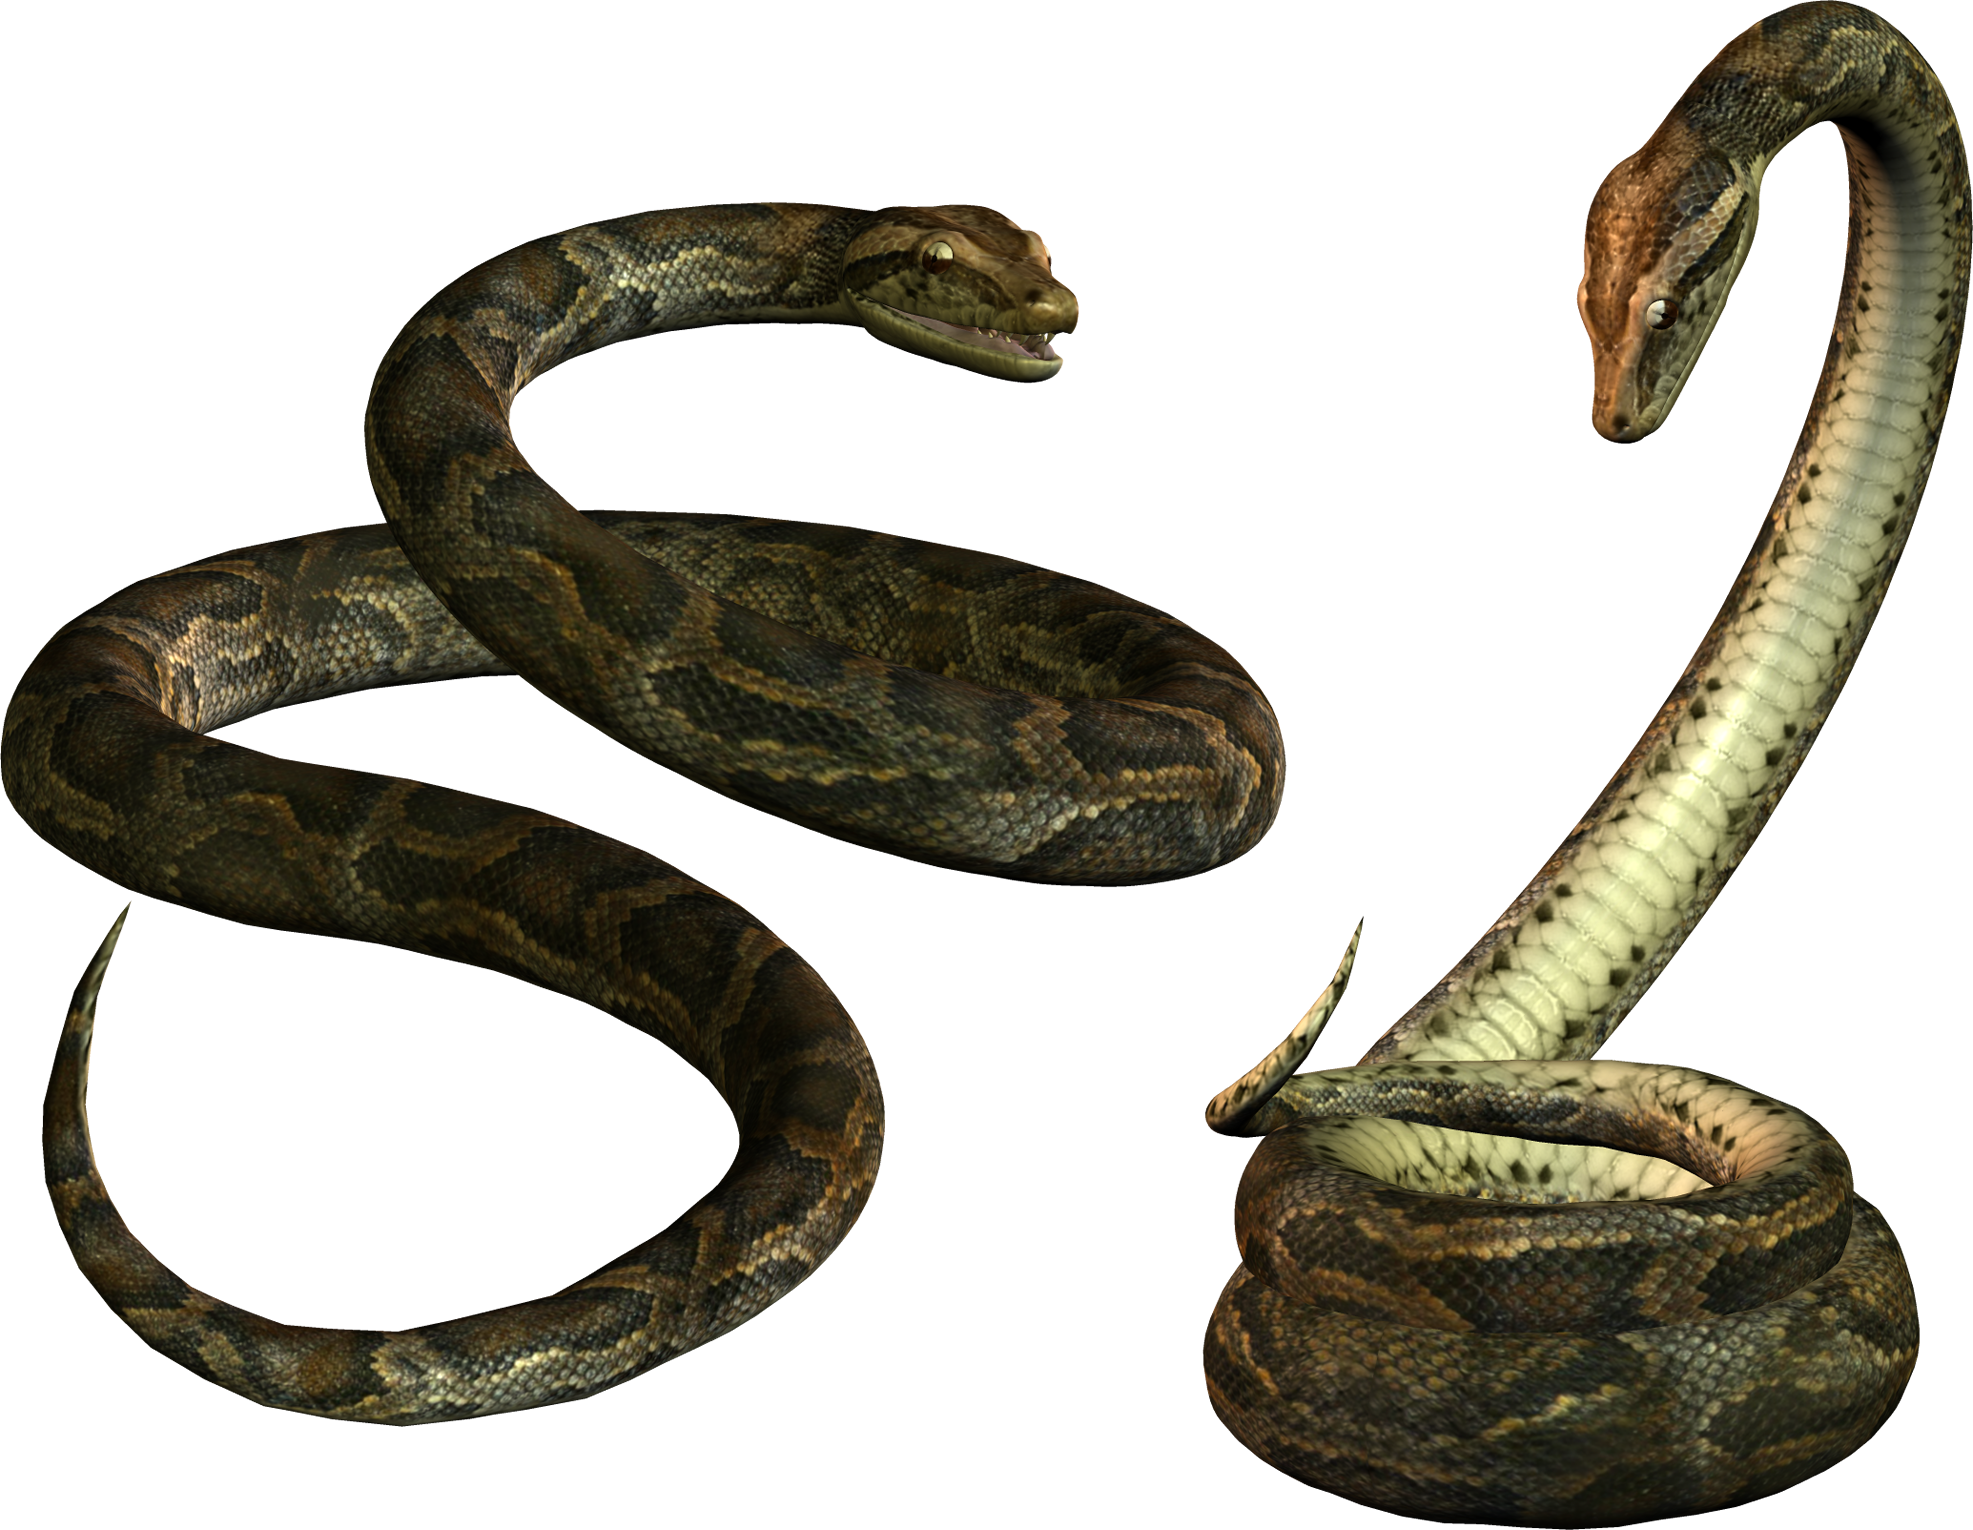 Snake PNG image picture download free - Cobra Snake PNG HD